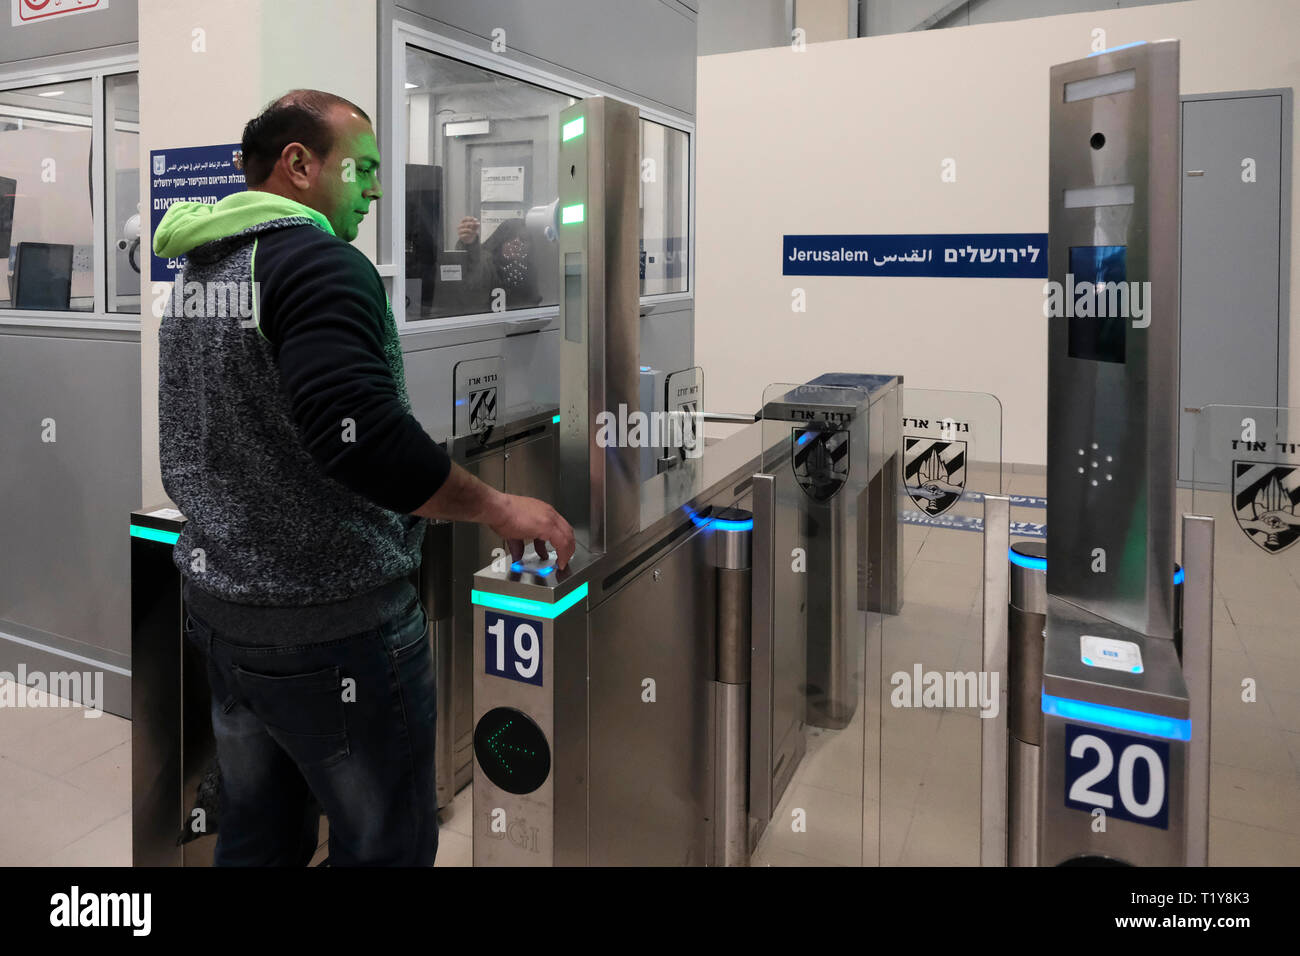 Qalandya, ISRAEL 28th March - A Palestinian man on his way to Jerusalem crossing turnstile gate with bio-metric system at the newly renovated Kalandia or Qalandiya Checkpoint between Jerusalem and Ramallah on 28 March 2019. The Qalandiya Checkpoint's $11 million renovation was carried out in order to enhance the commute of thousands of Palestinians every day, mostly with the help of new identification stations with improved technology. Credit: Eddie Gerald/Alamy Live News - Stock Image